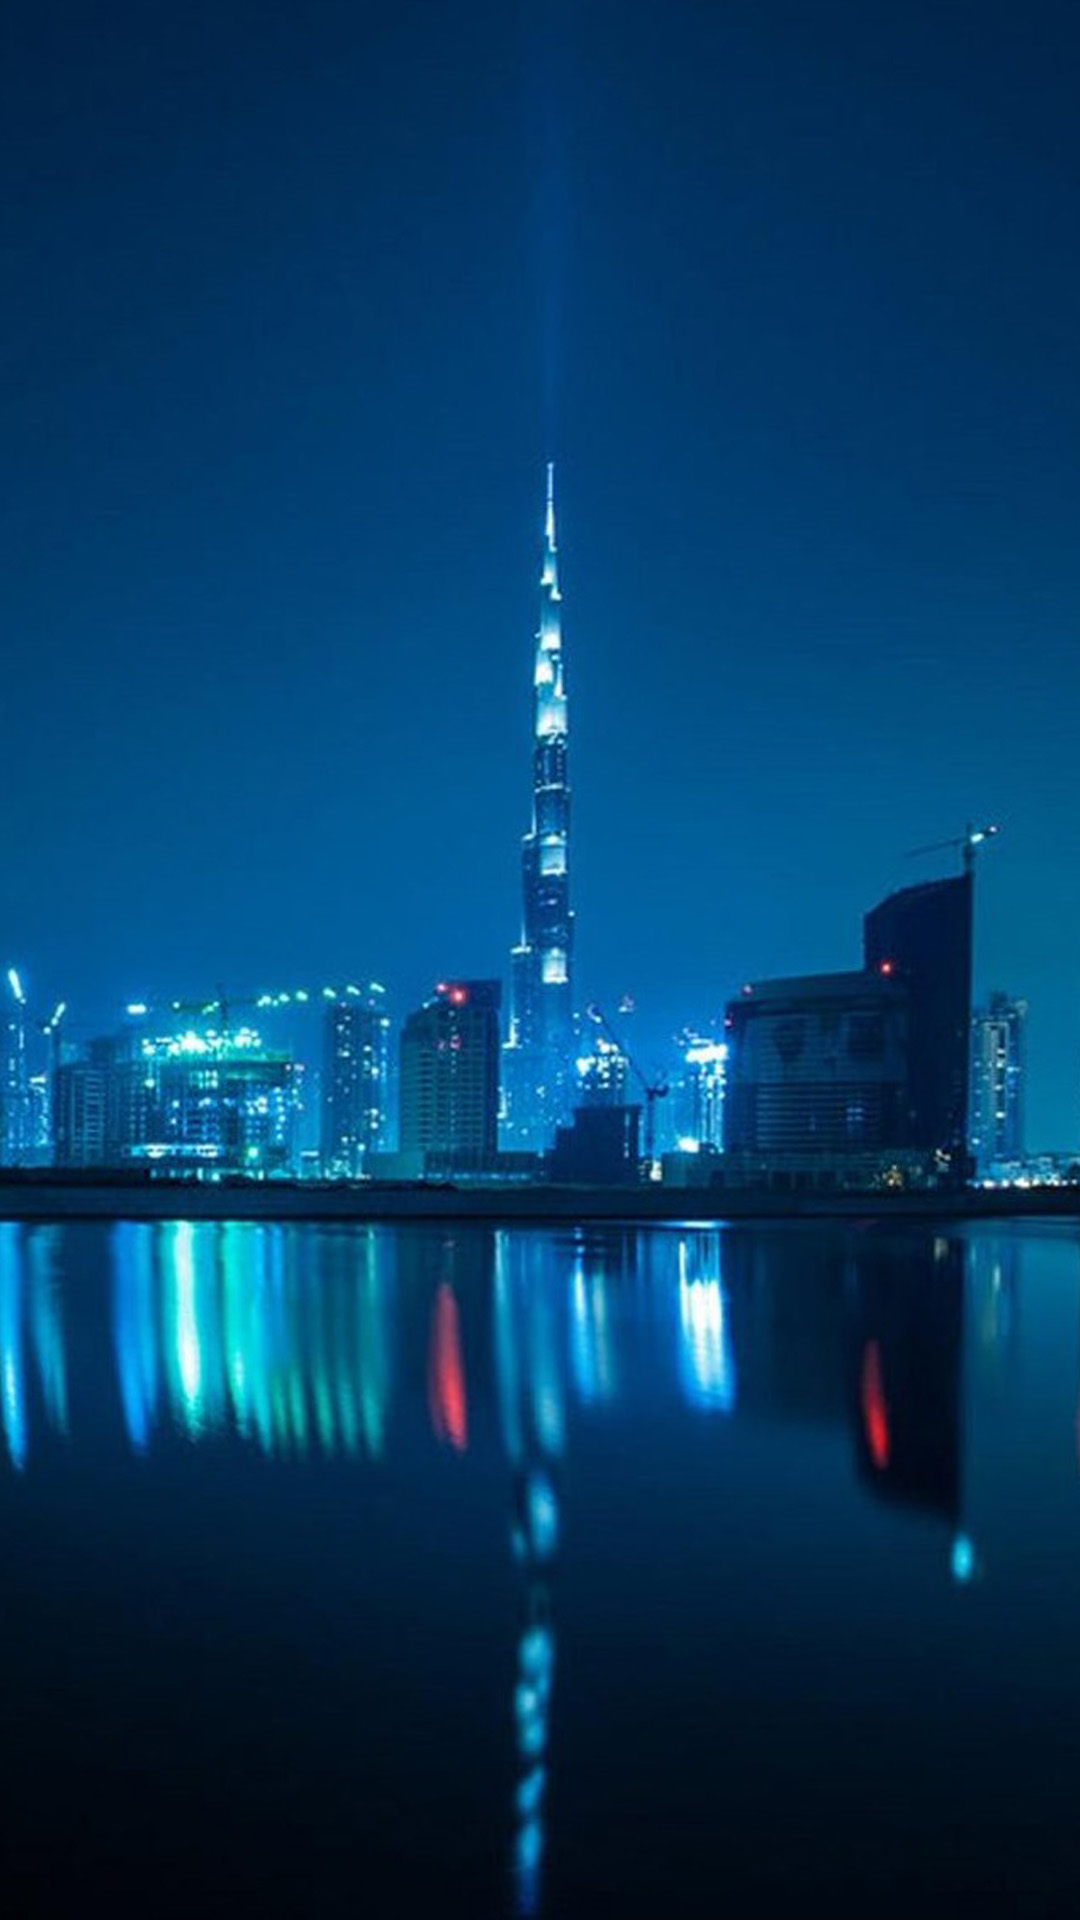 dubai burj khalifa android wallpaper - android hd wallpapers